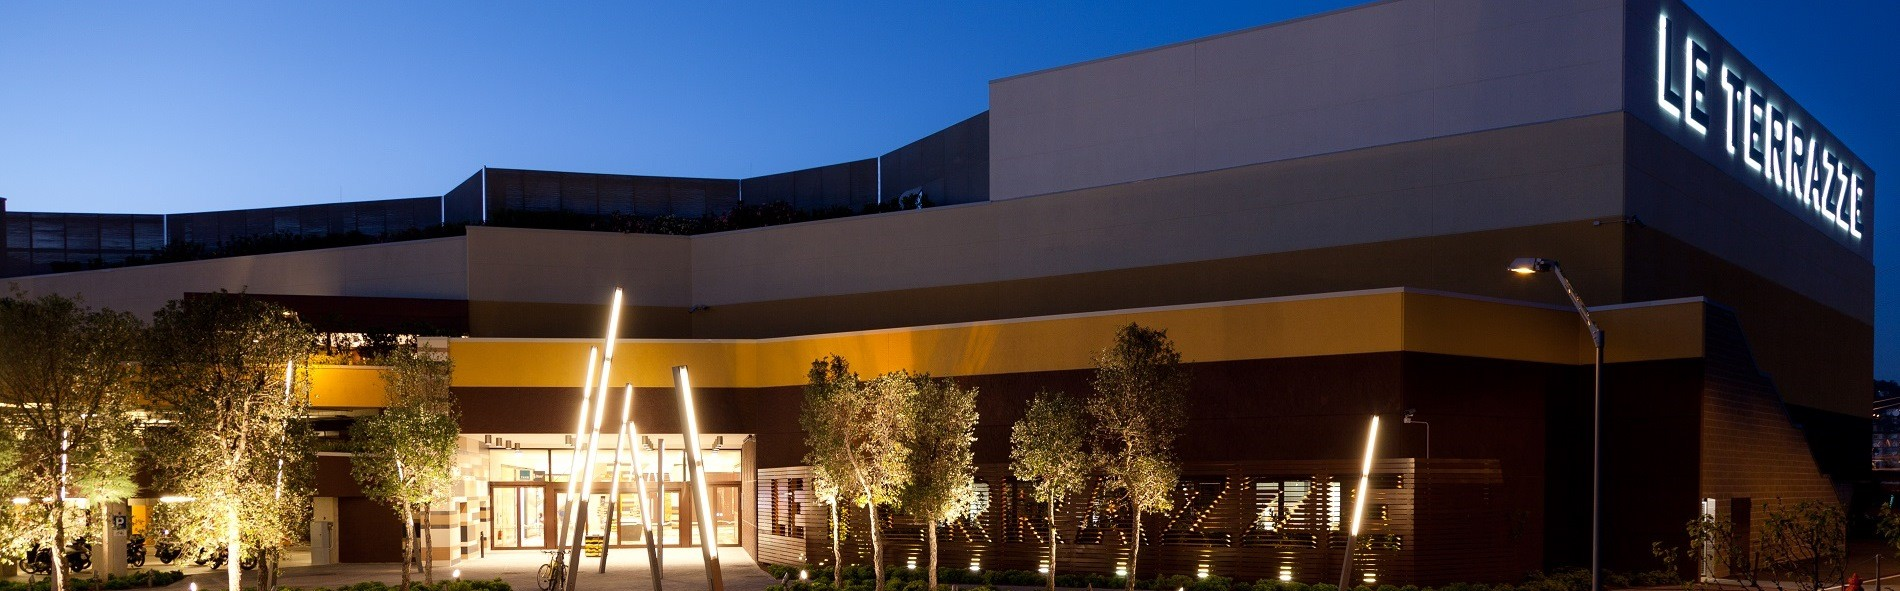 Stunning Centro Commerciale Le Terrazze Roma Gallery - Idee ...